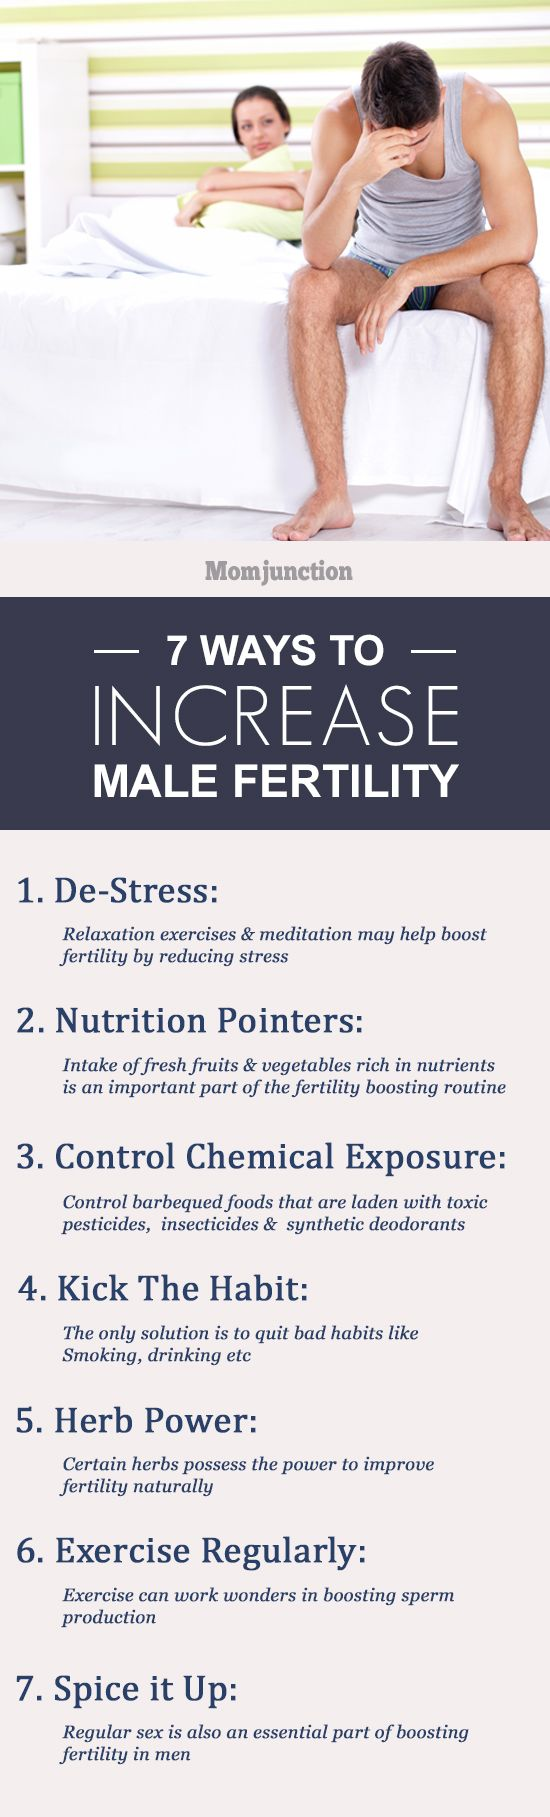 how can i increase my sperm